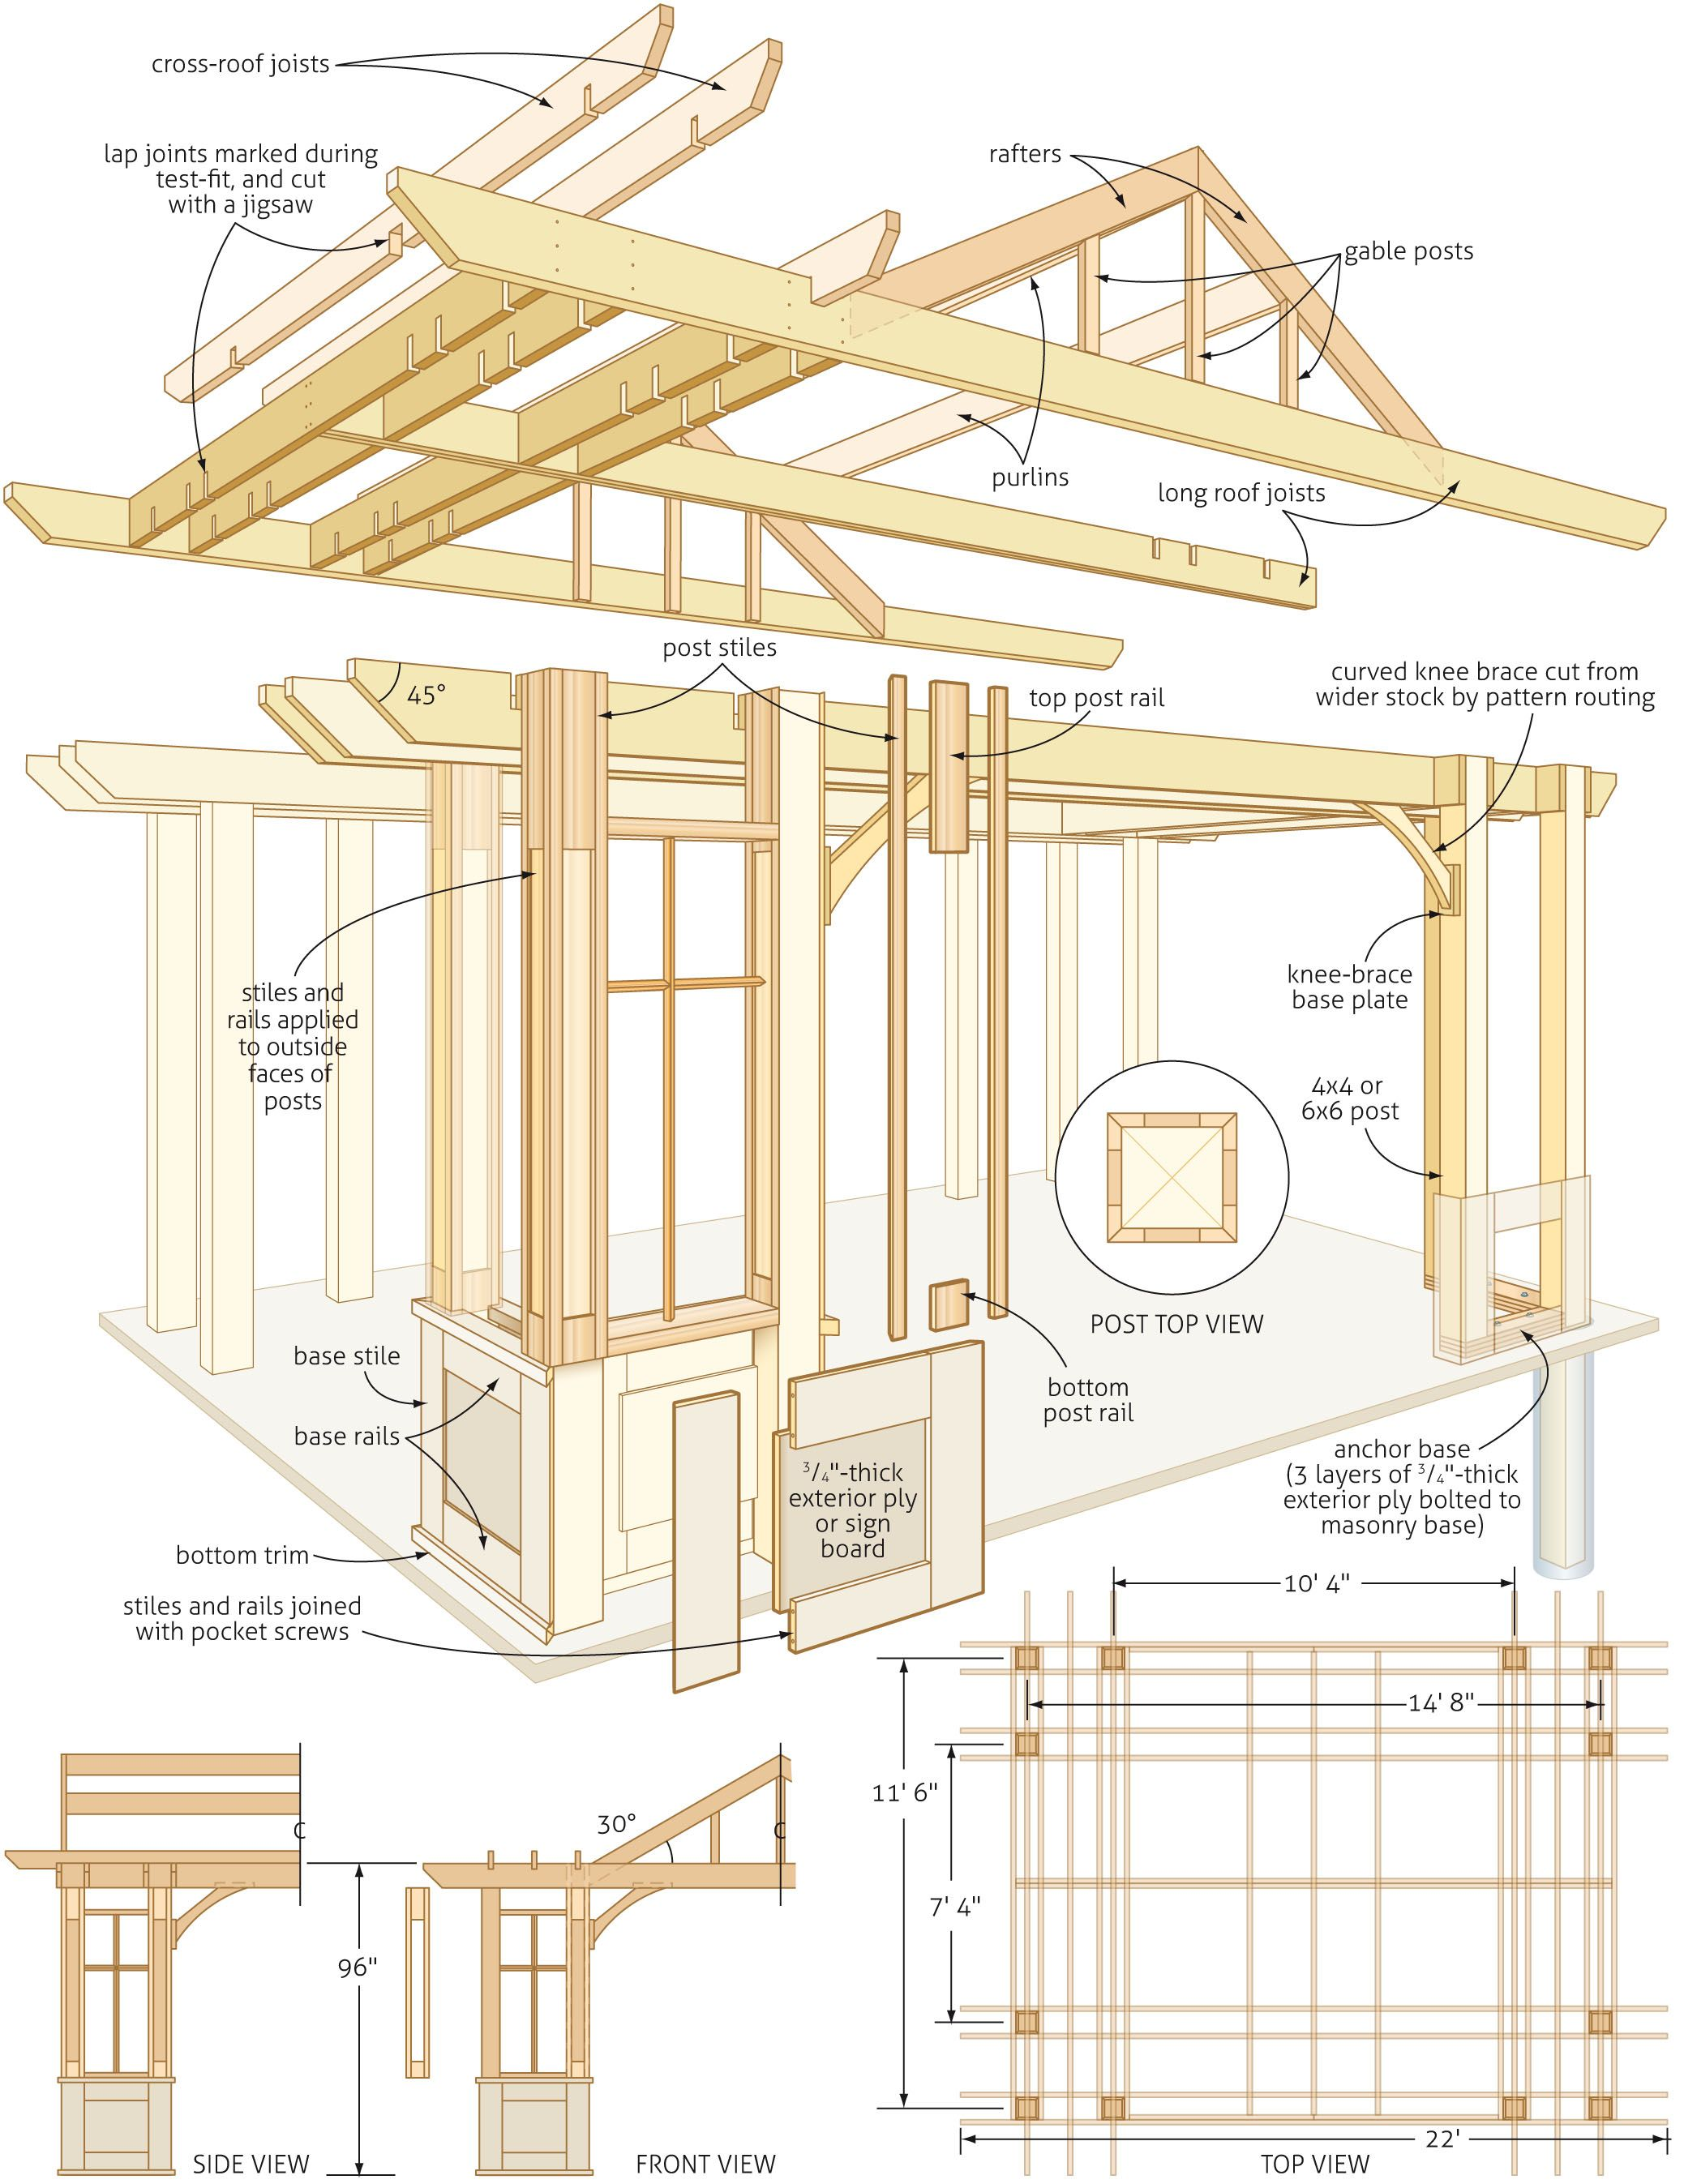 A Visual Bookmarking Tool That Helps You Discover And Save Creative Ideas Learn How To Build Pergola With These Step